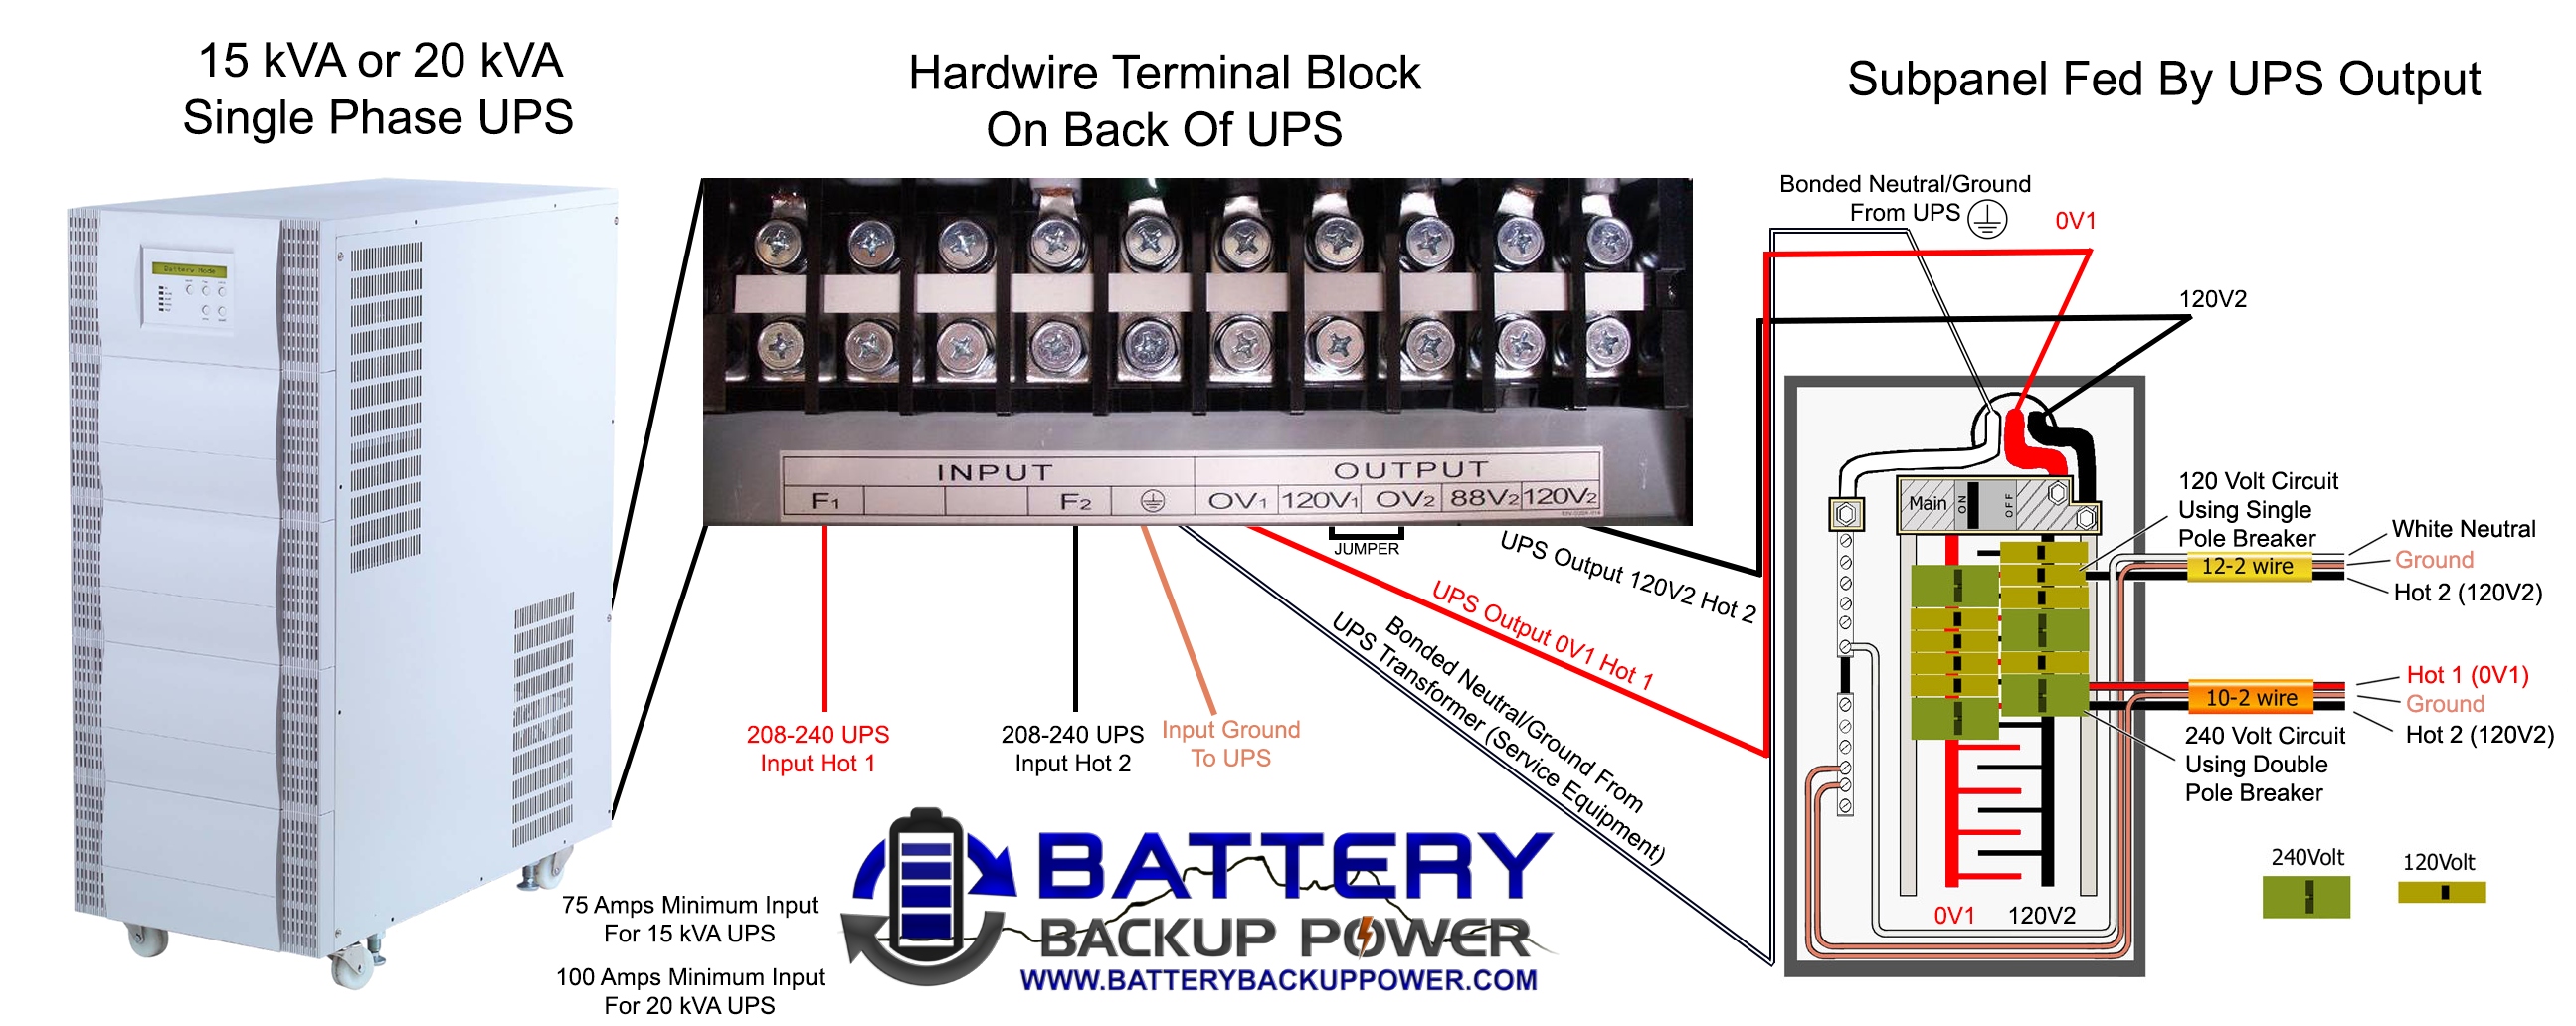 small resolution of how to wire a 15 kva or 20 kva ups to a subpanel to provide real time backup power to all circuits connected to the subpanel this is an example